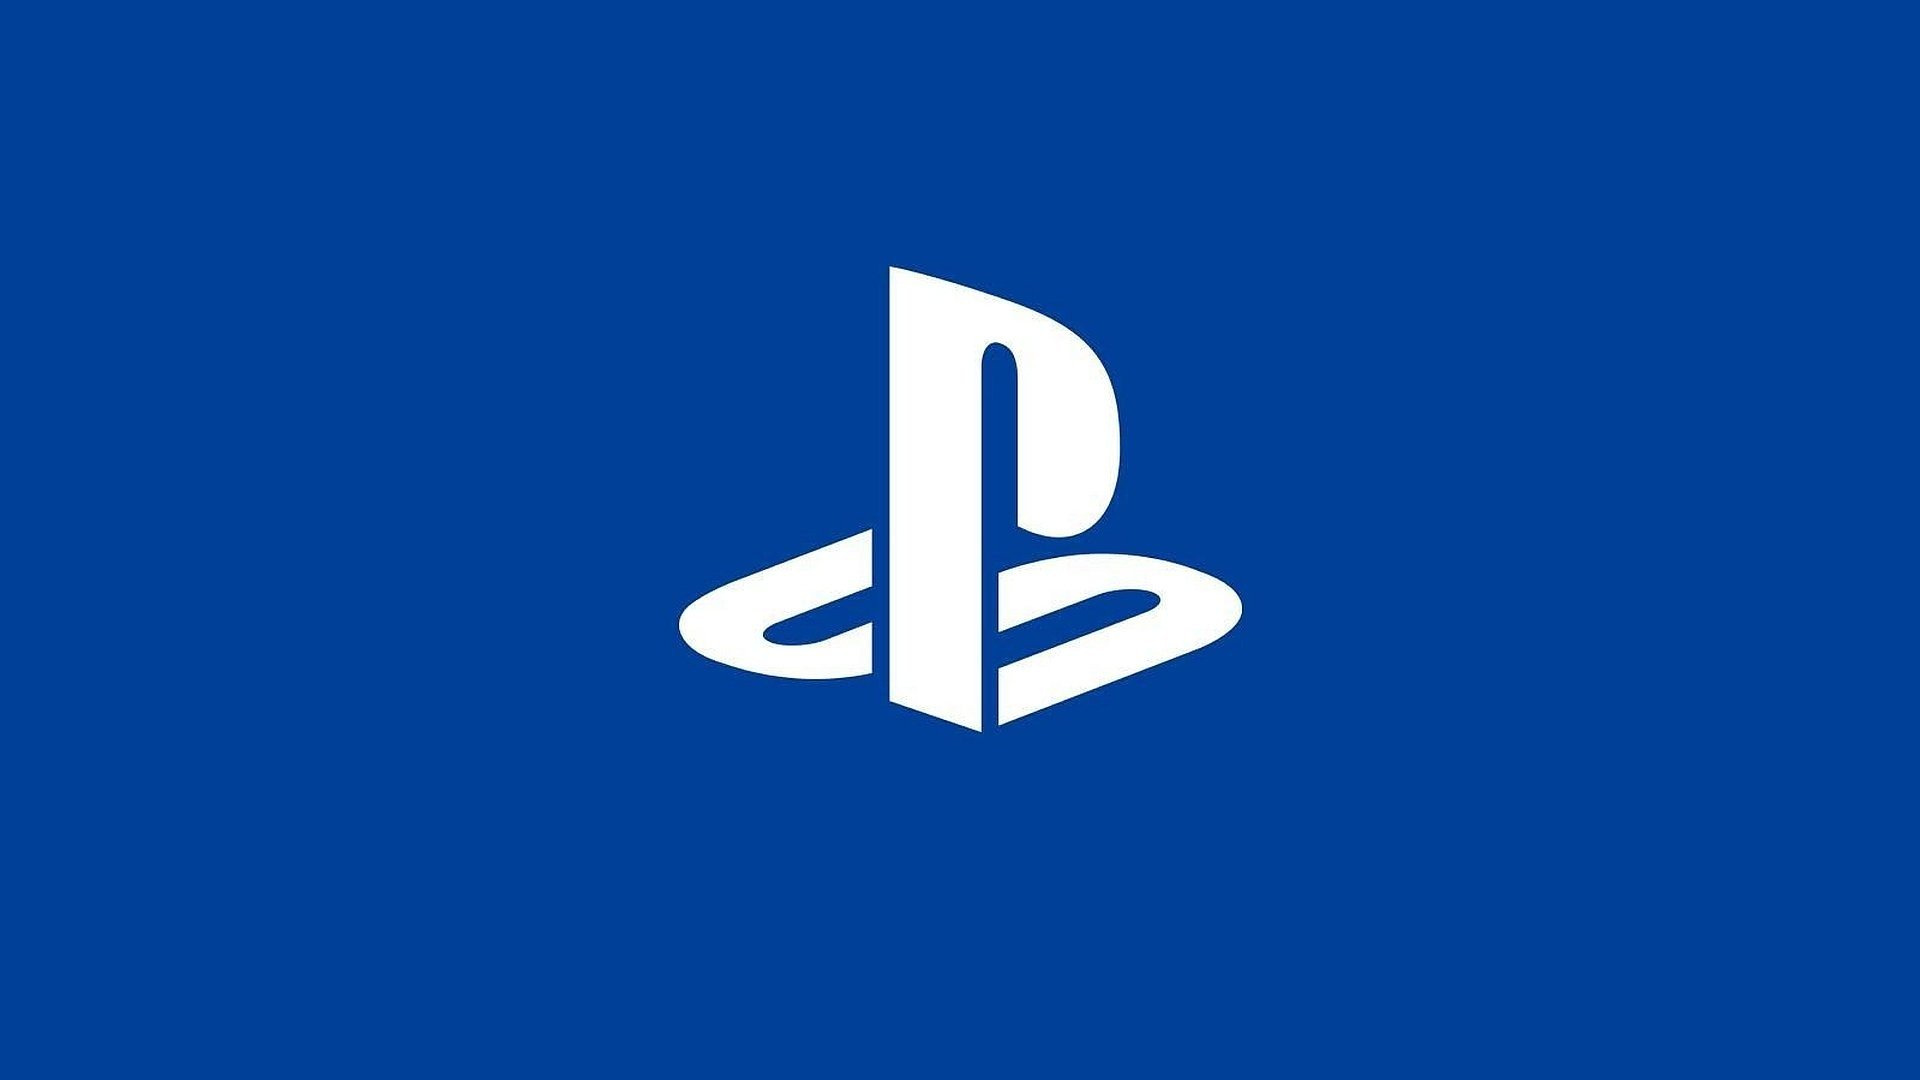 Sony Has Delayed This Week's PS5 Next-Gen Gameplay Event